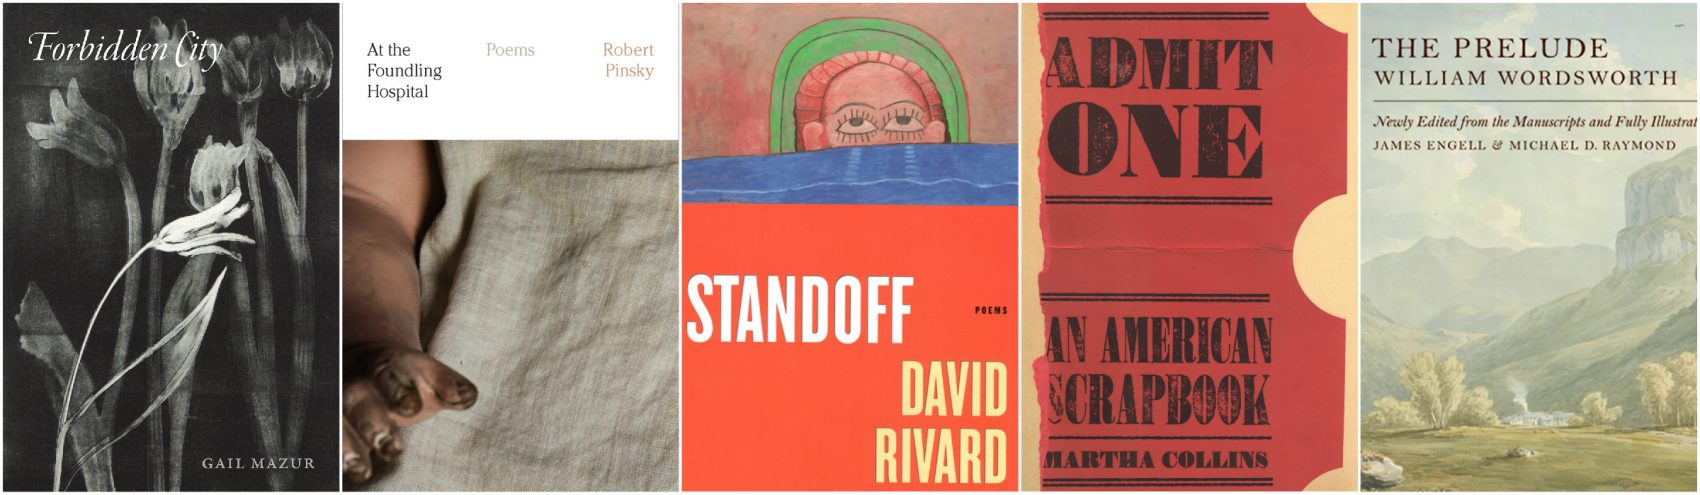 Critic Lloyd Schwartz's pick of the best poetry books of the year. (Courtesy)